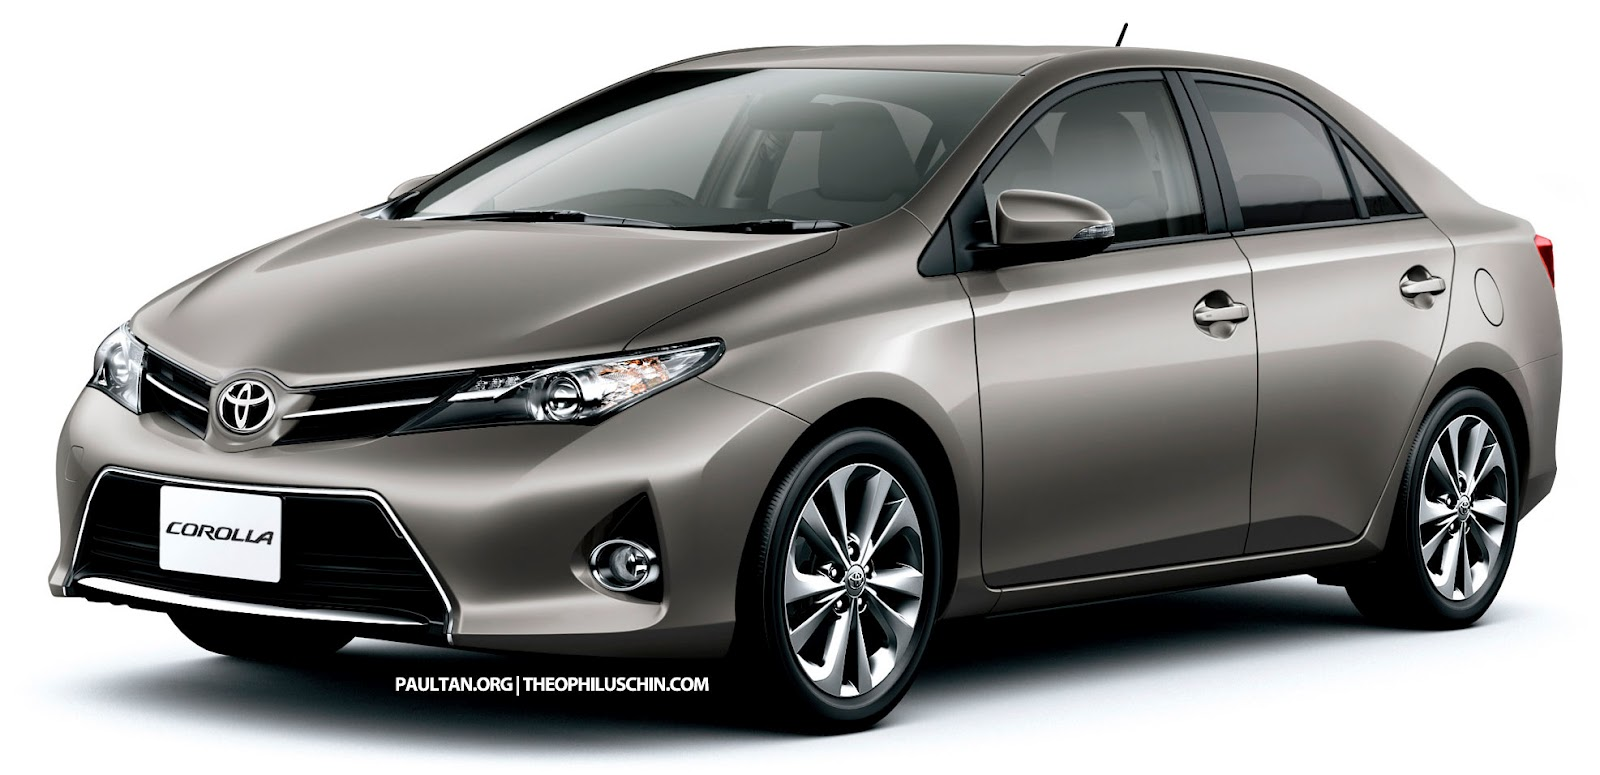 The new honda city or toyota corolla archive pakistan s gamers community